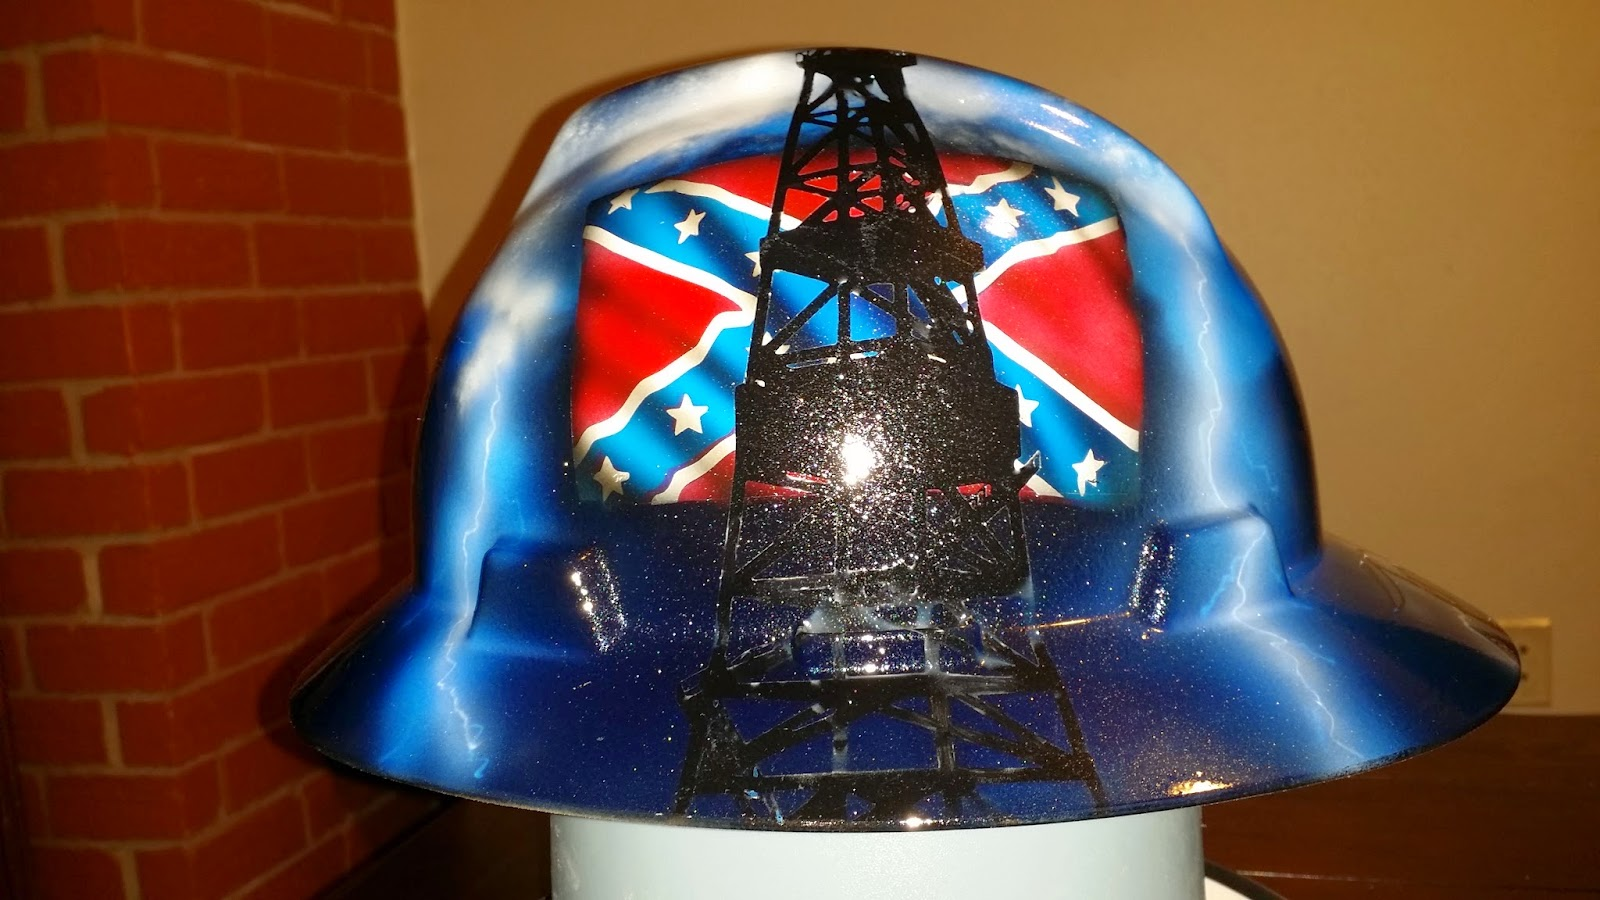 custom painted hard hat with rebel flag and oil derrick